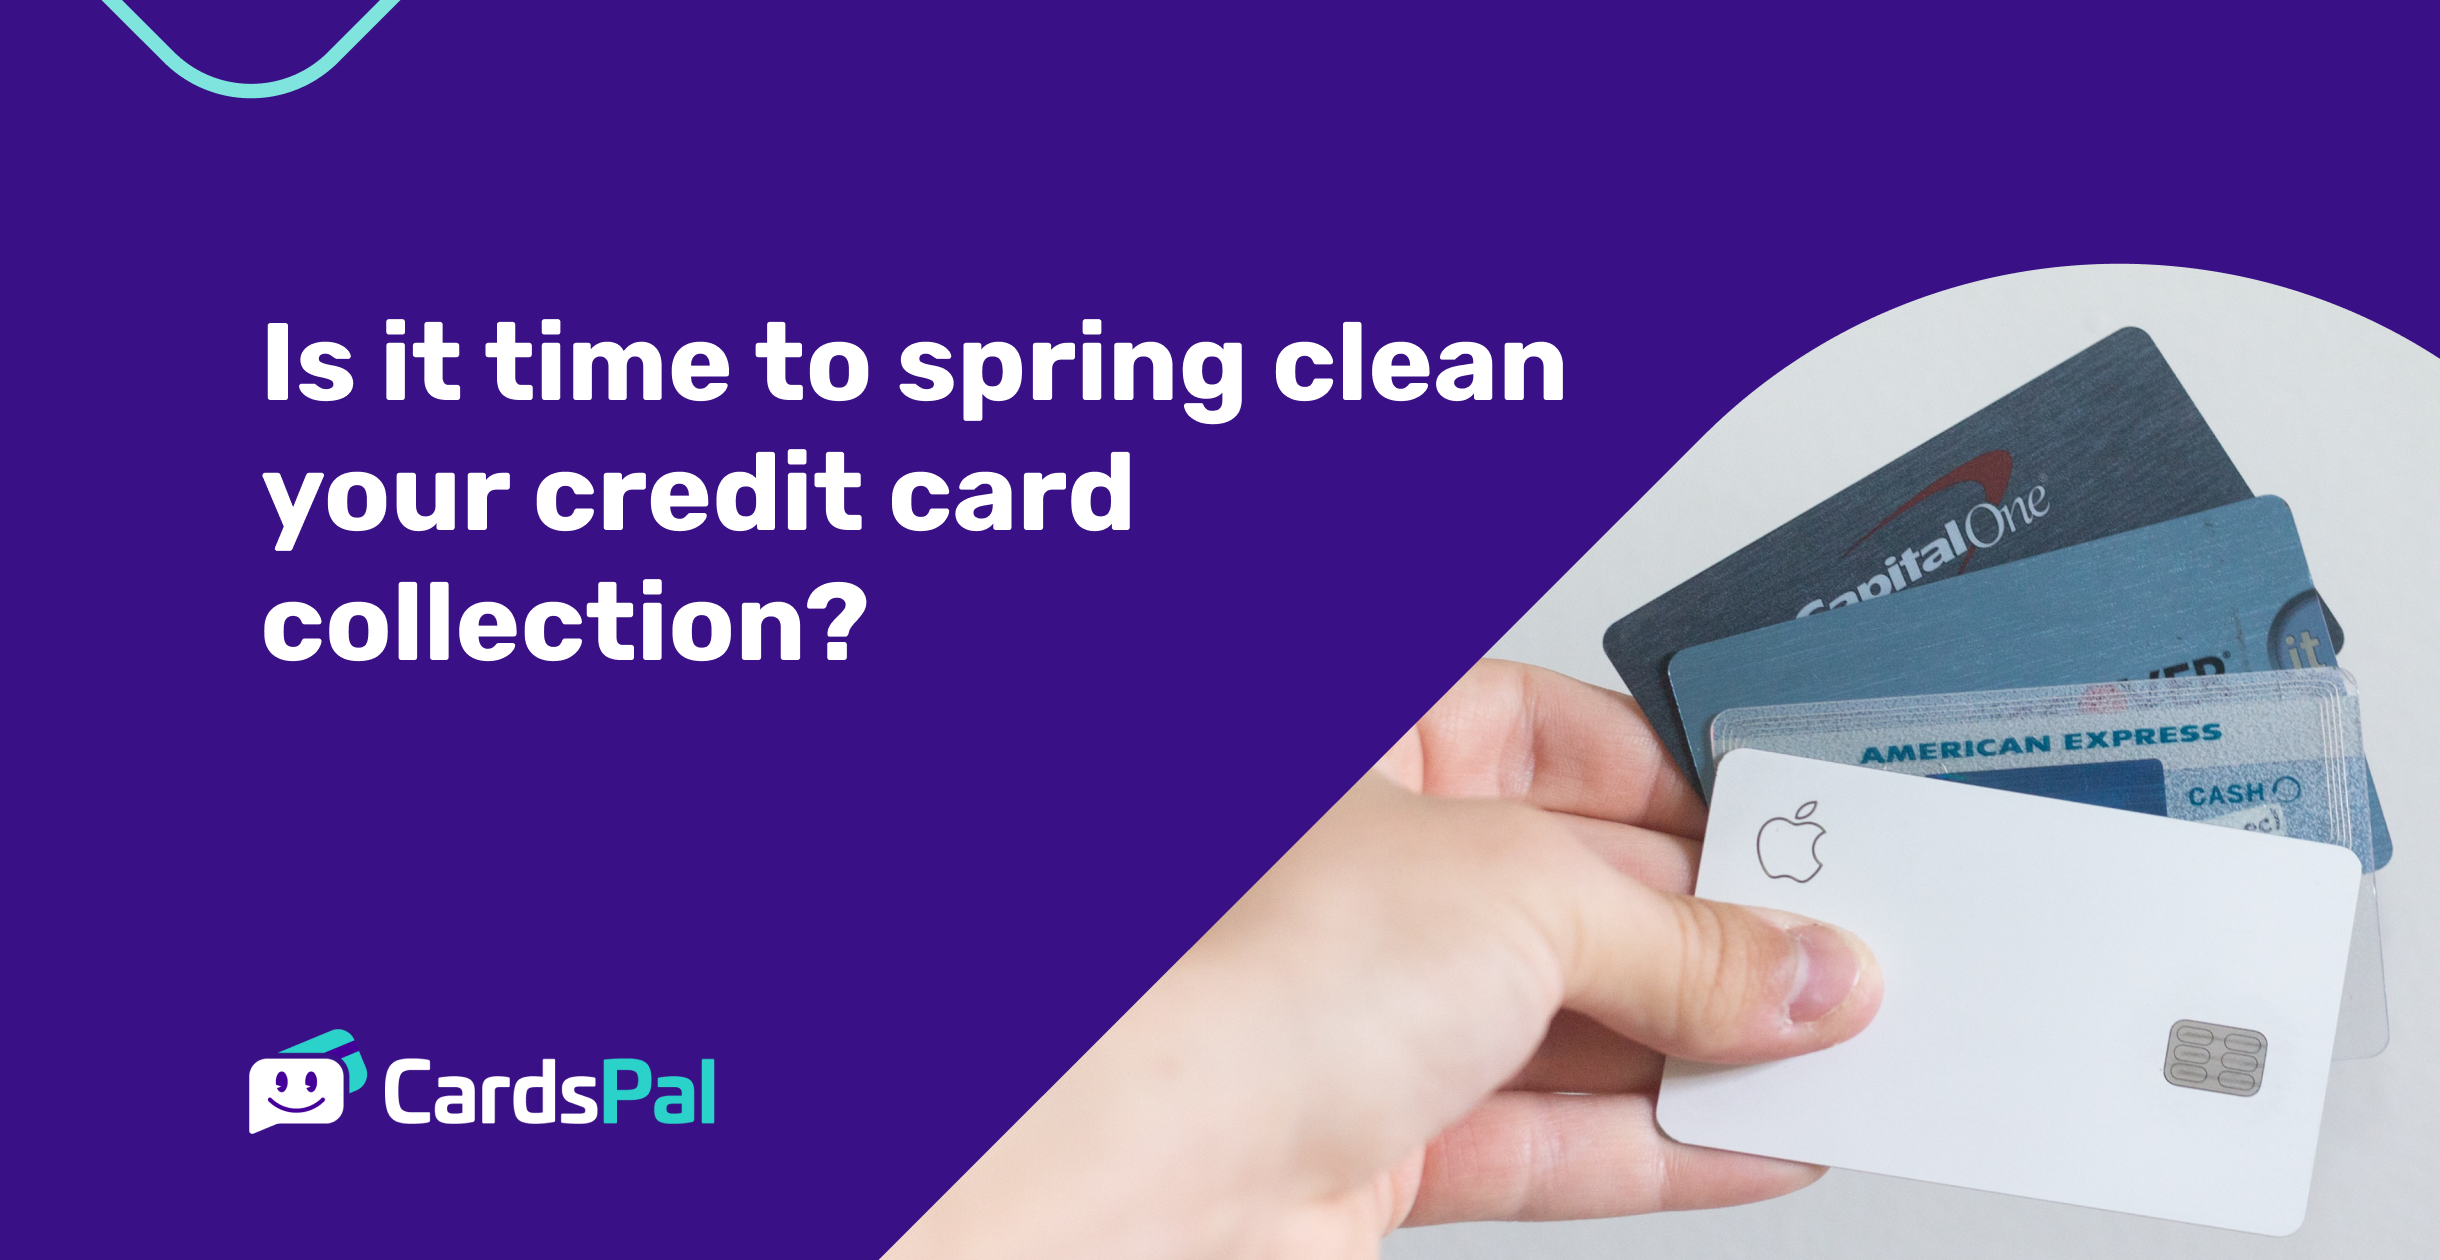 Is it time to spring clean your credit card collection?